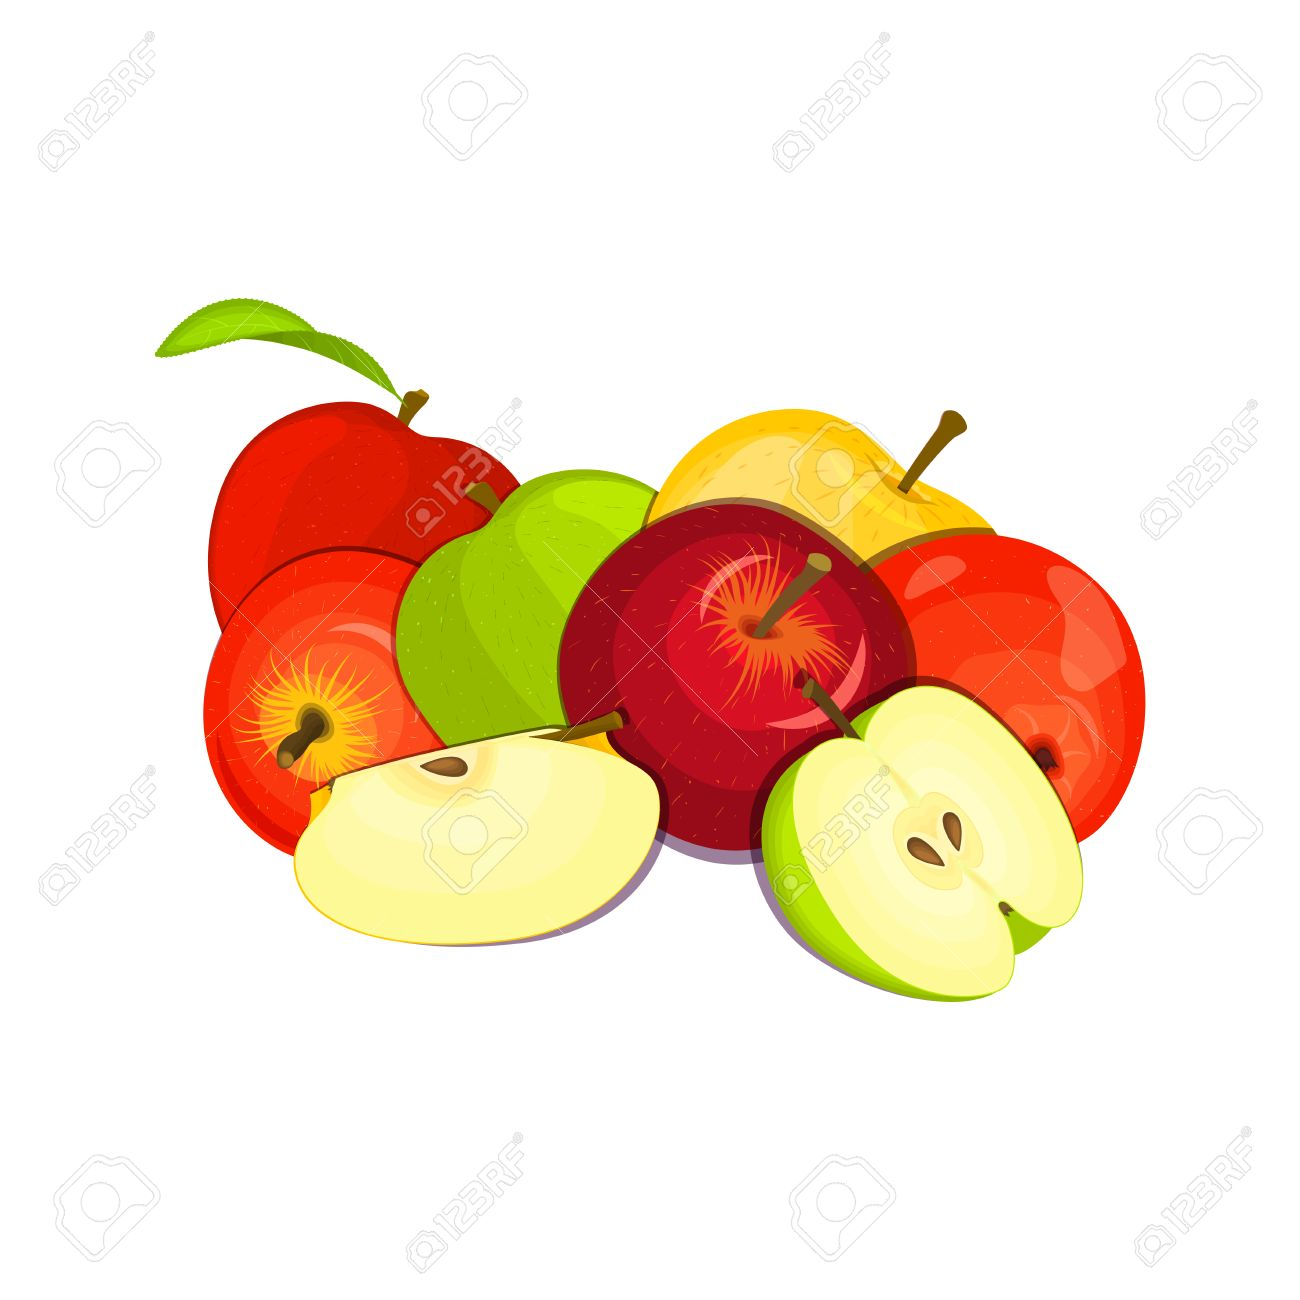 green apple fruit drawing. vector drawing of a few apples. yellow, red and green apple fruits appetizing looking fruit l